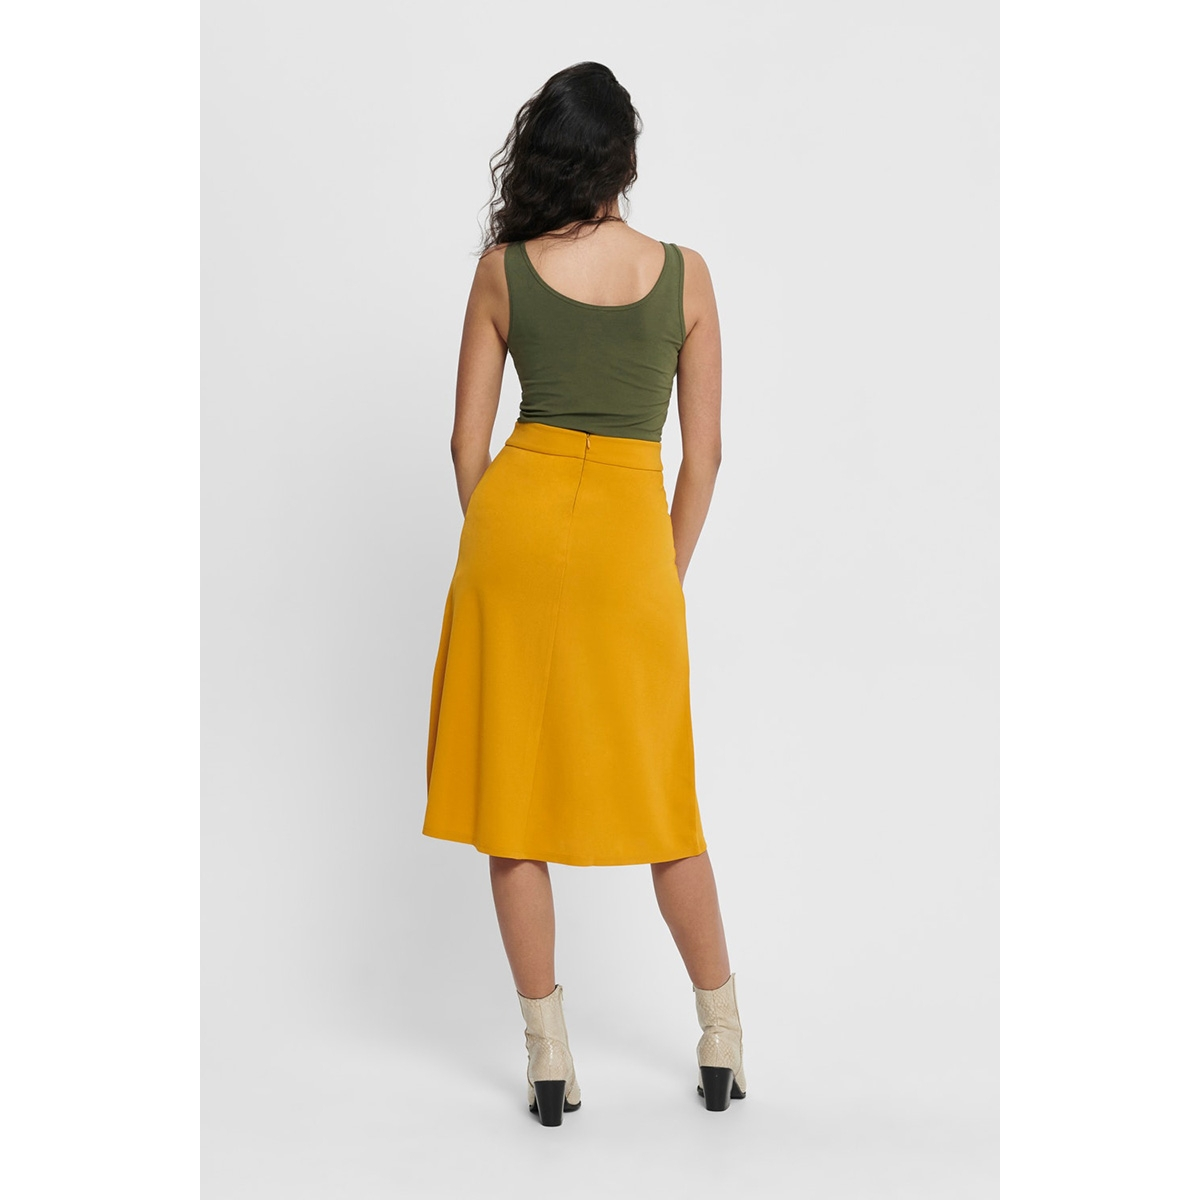 jdybellis button skirt jrs 15179719 jacqueline de yong rok golden yellow